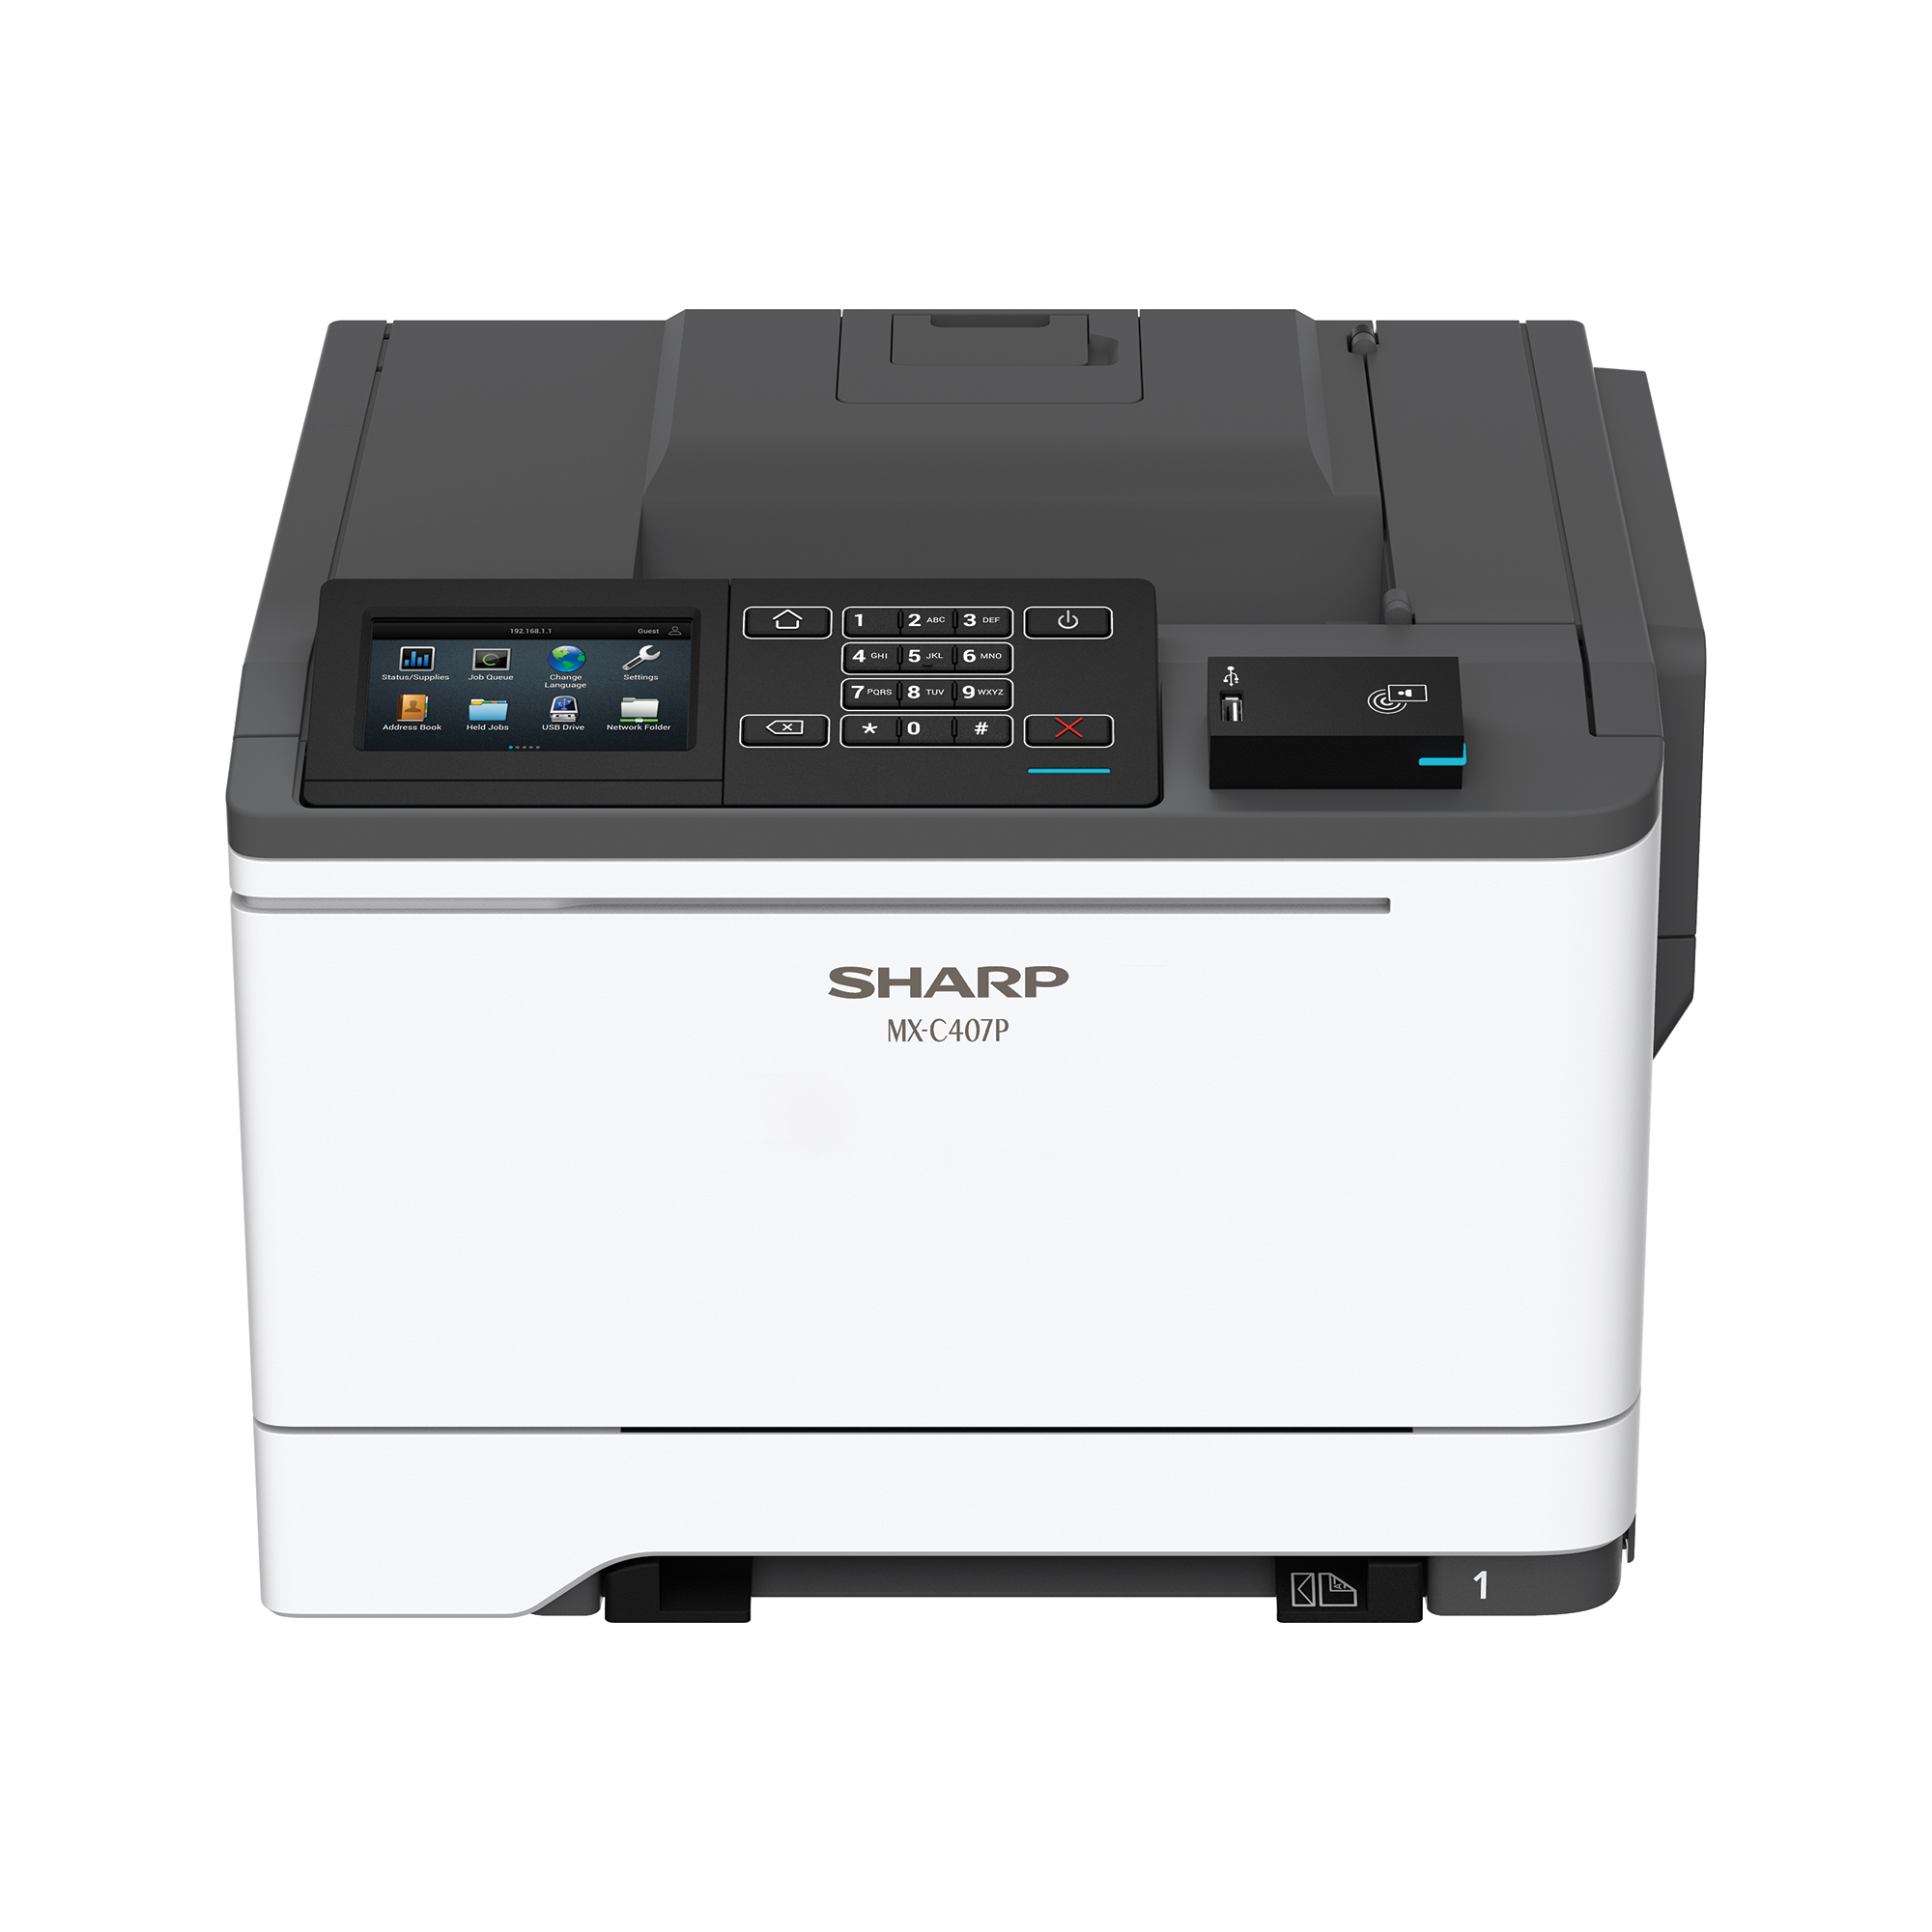 Sharp ,MX-C407P, Color Laser Printer, New (MX-C407P)